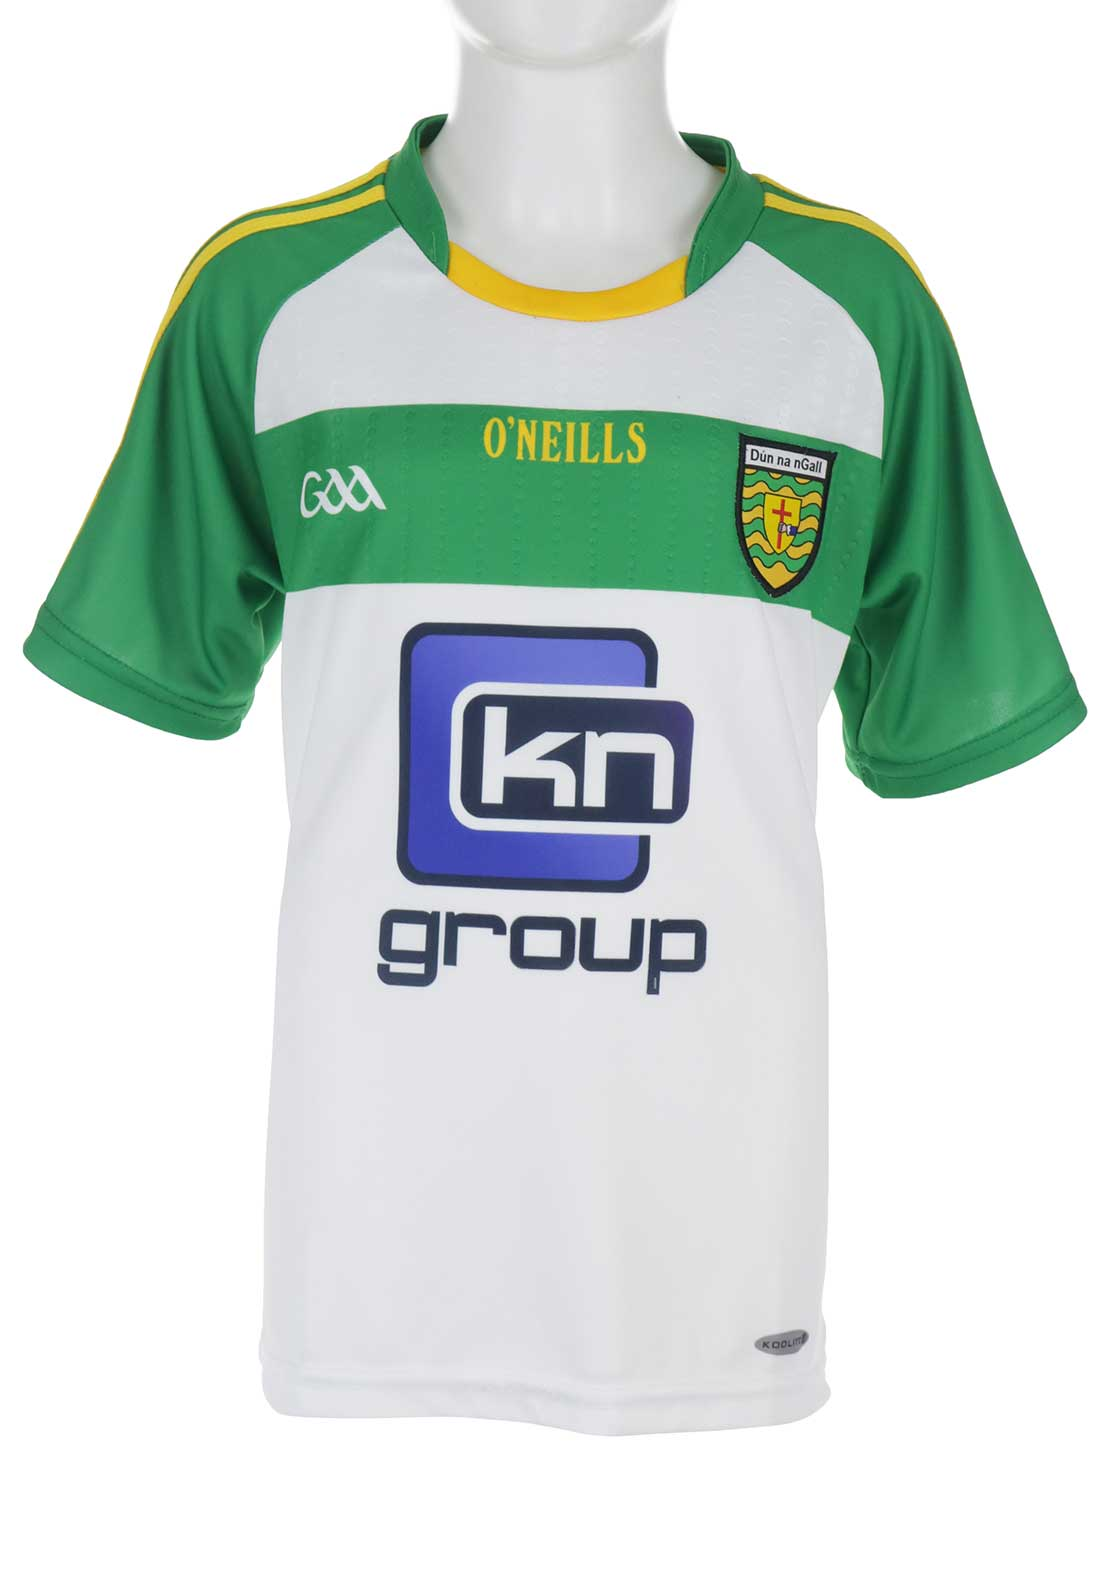 O'Neill's Donegal GAA Kids Home Jersey, White